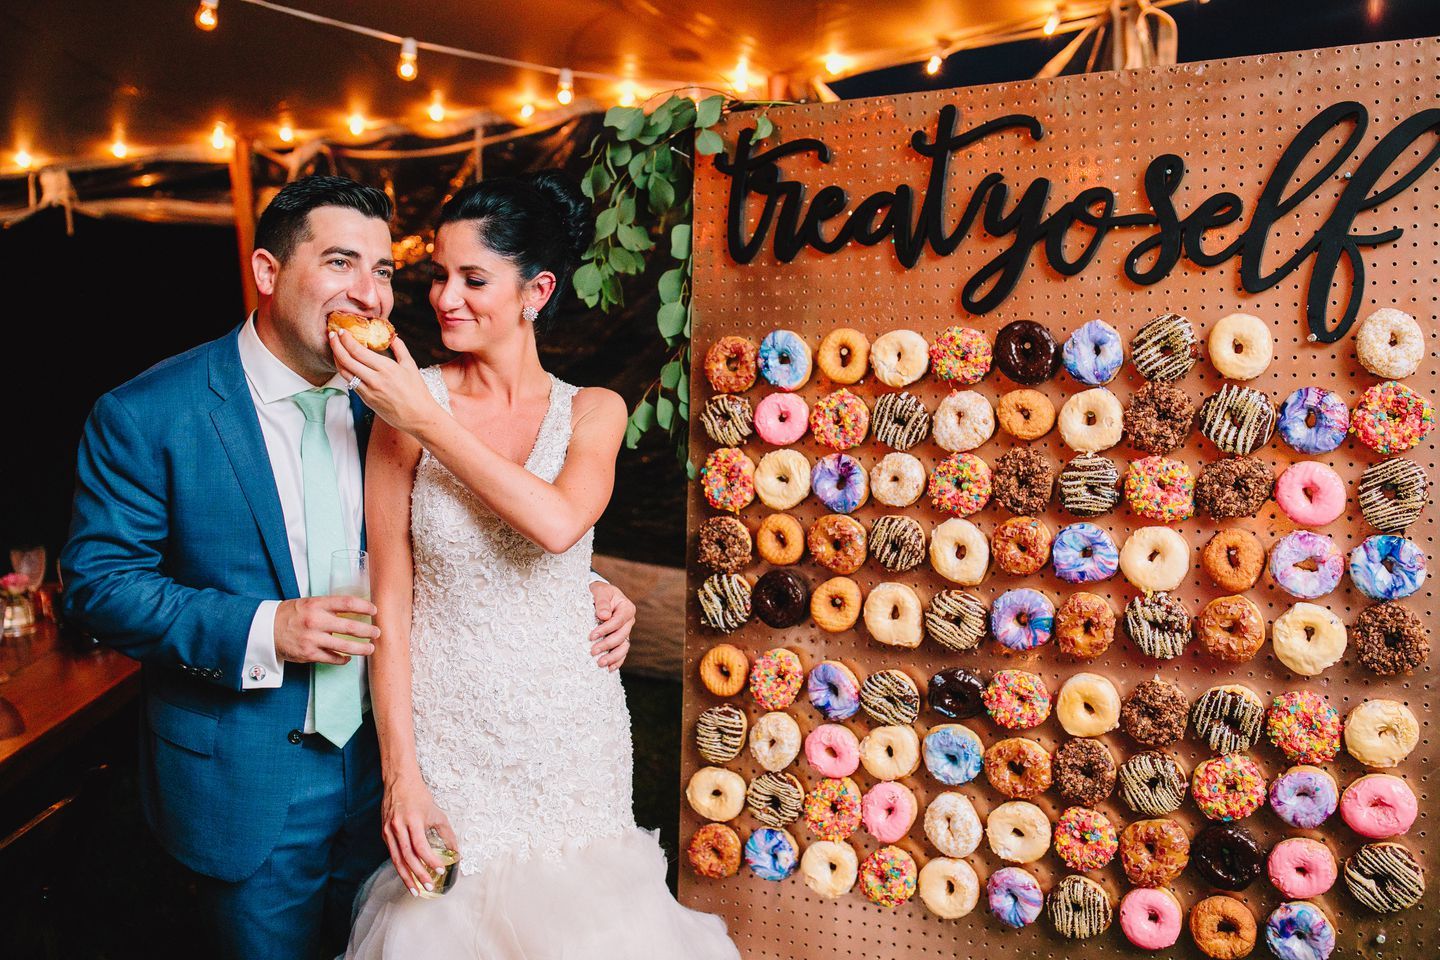 Maple bacon, Fruity Pebbles, and the couple's favorite, chocolate butter crunch, were among the flavors on Molly and Mike Shaw's DIY doughnut wall.